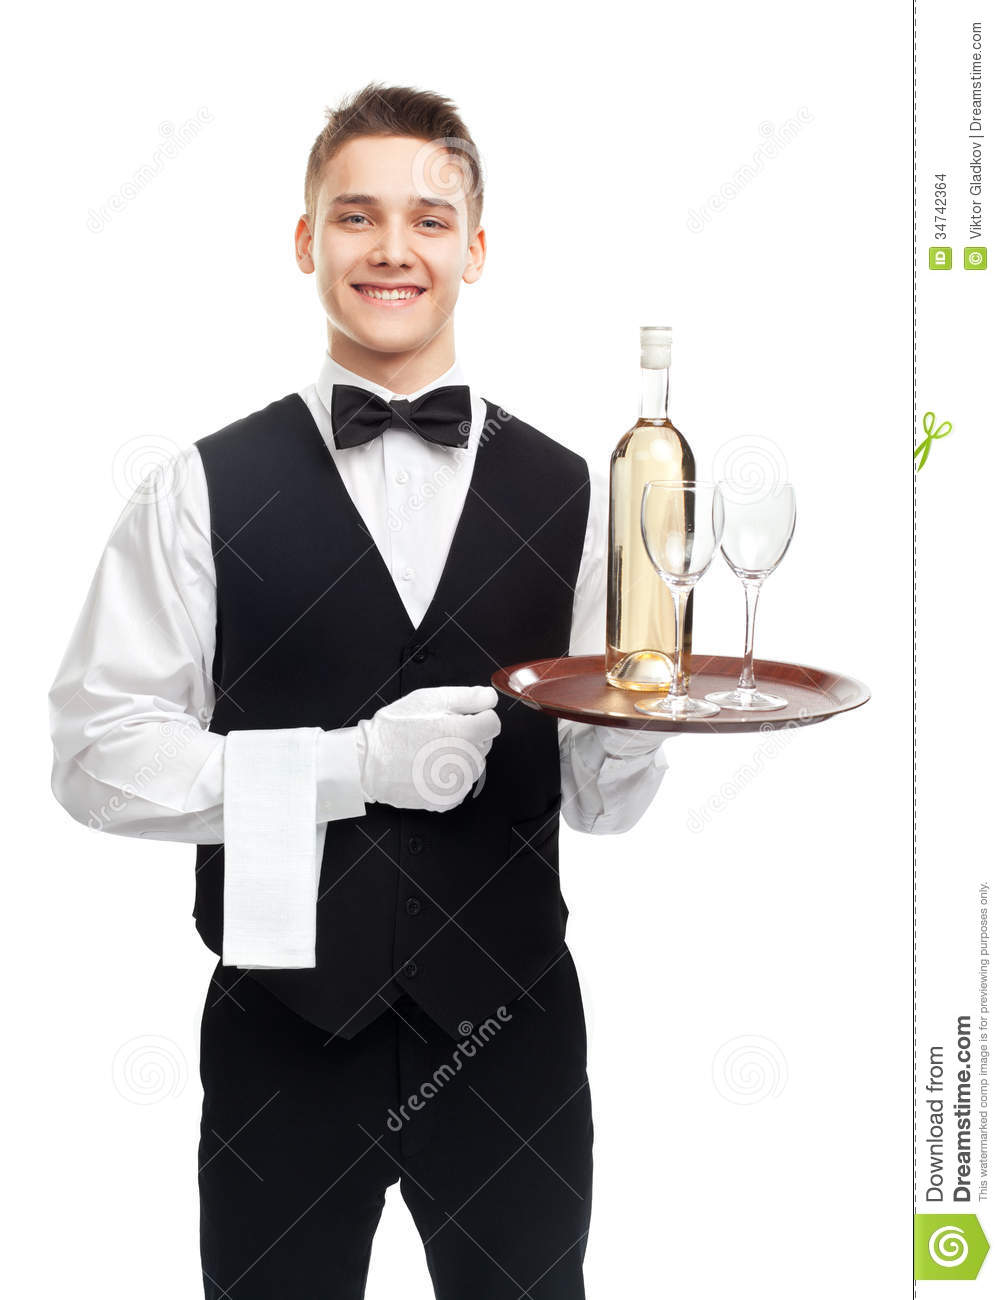 Happy Days Cast n 5597088 additionally Stock Images Young Waiter Bottle Wine Tray Portrait Happy Smiling White Stemware Glass Isolated White Background Image34742364 besides 380071 Disney Roleplay The Incredibles Gif as well Stock Image Administrative Management Services Jobs Occupation Set People Pictogram Representing Job Profession Industry Image36289141 together with 131480 Marcusbutlertv Marcus Butler Gif. on black butler thumbs up